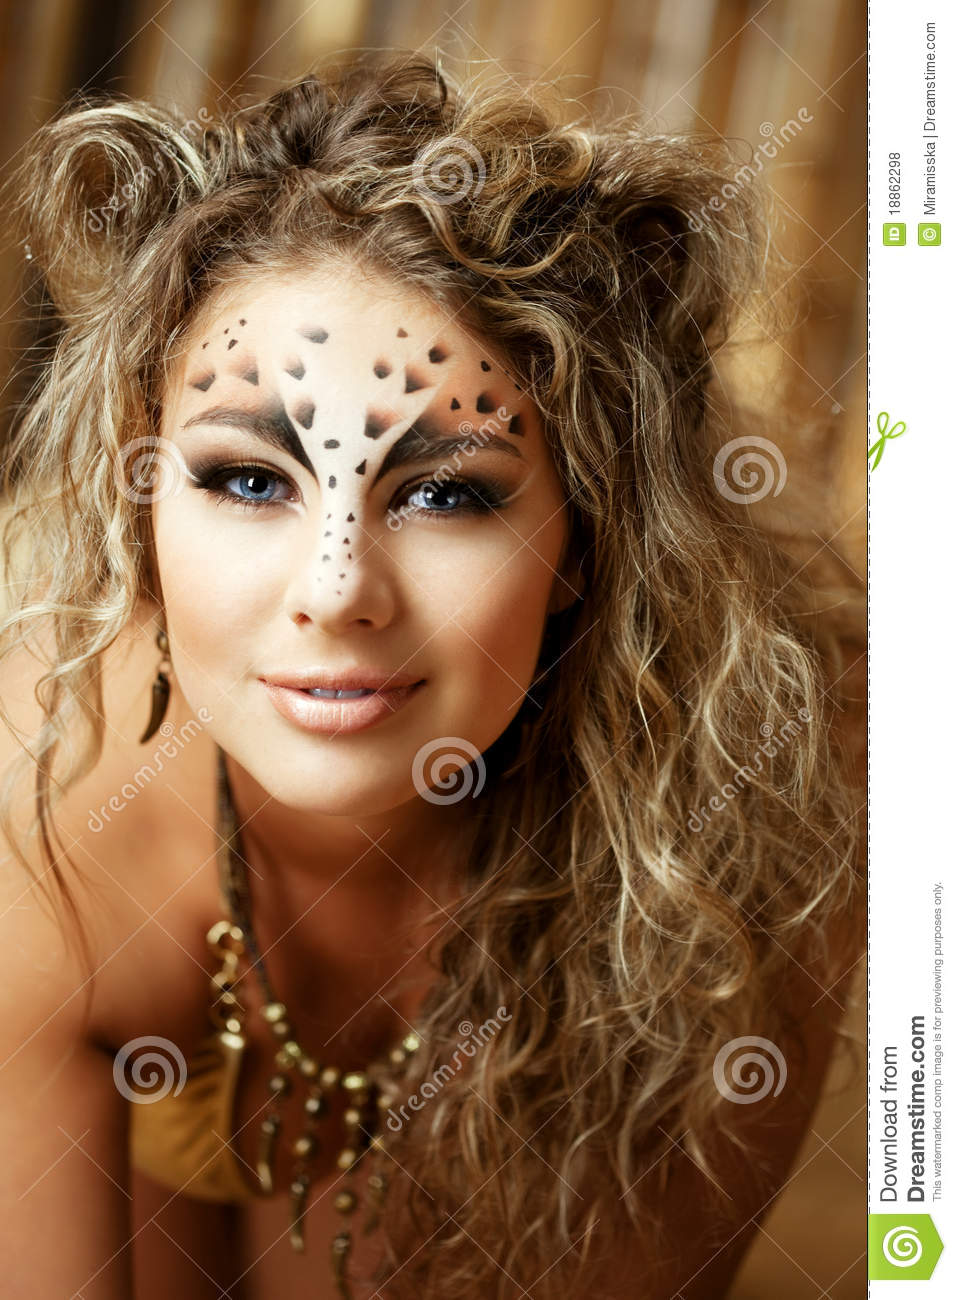 Girl With An Unusual Make Up As A Leopard Stock Photo